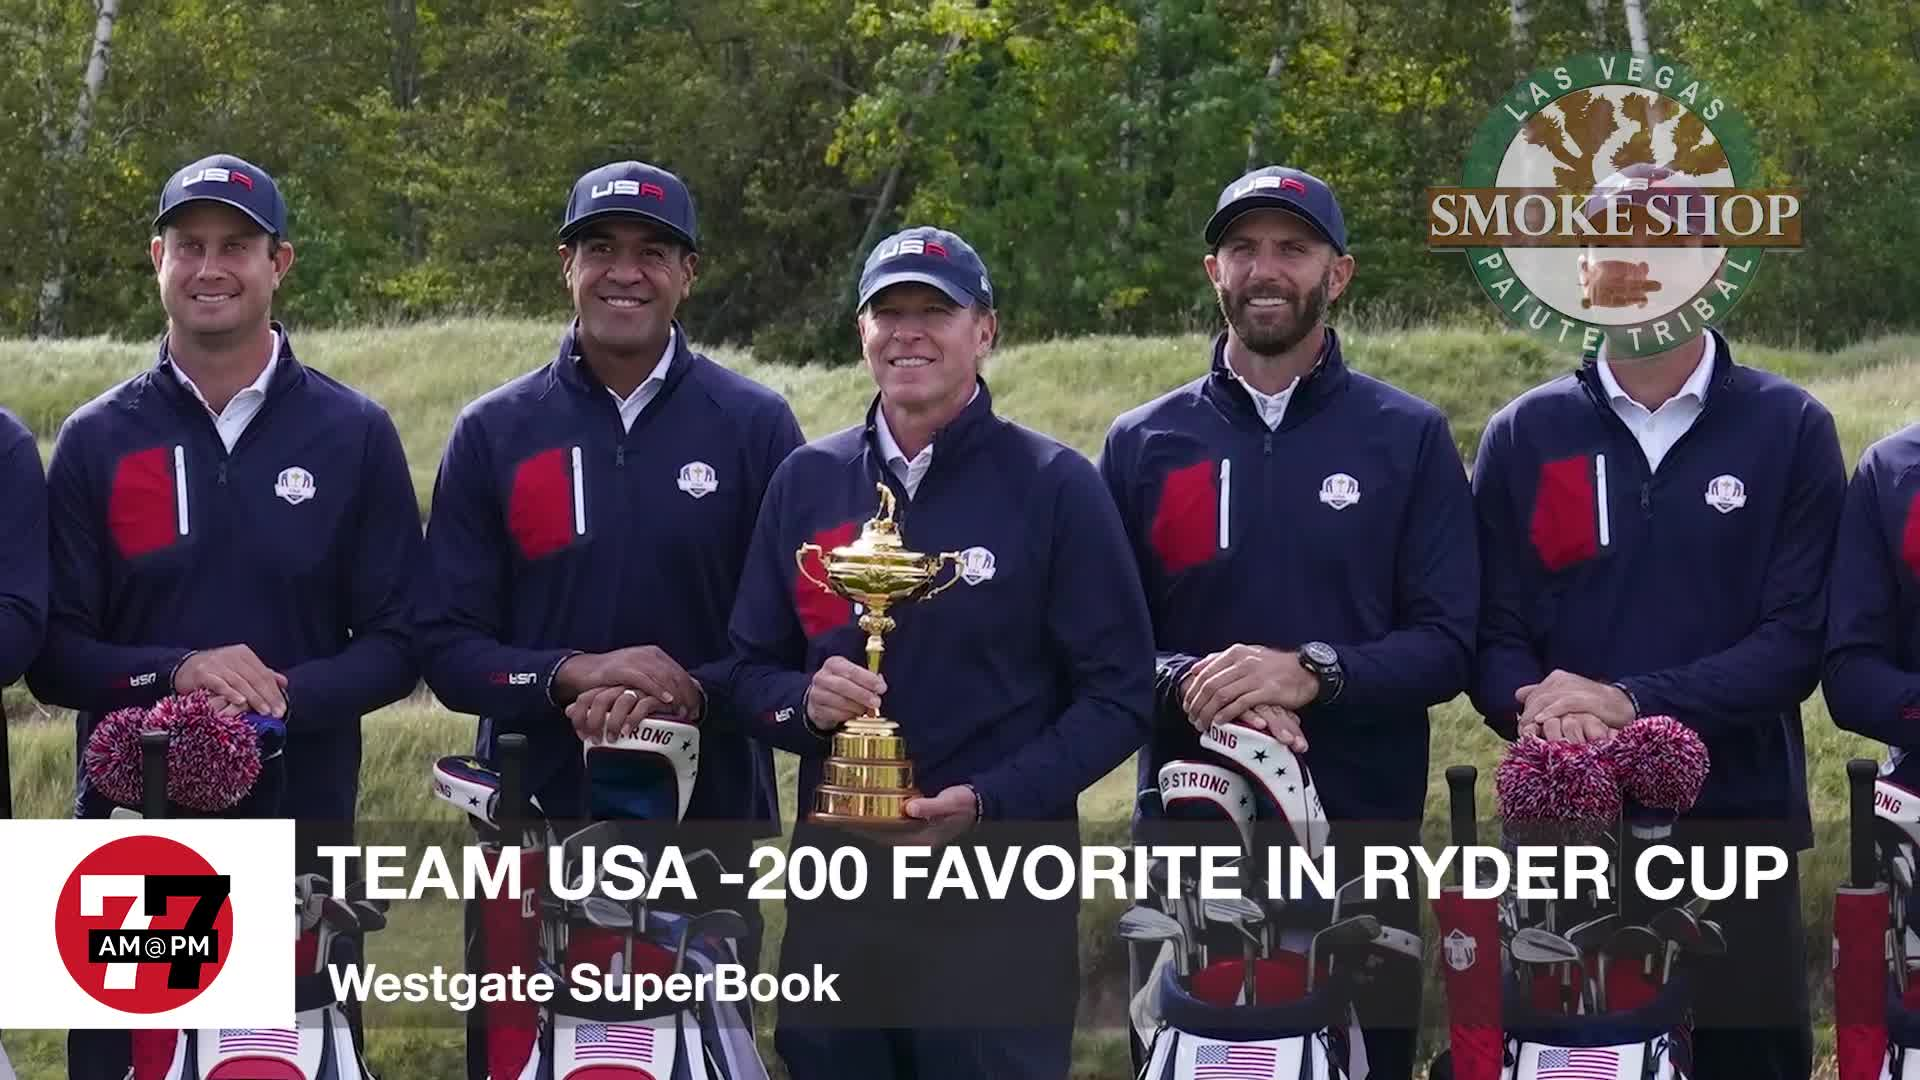 7@7PM Team USA -200 Favorite in Ryder Cup